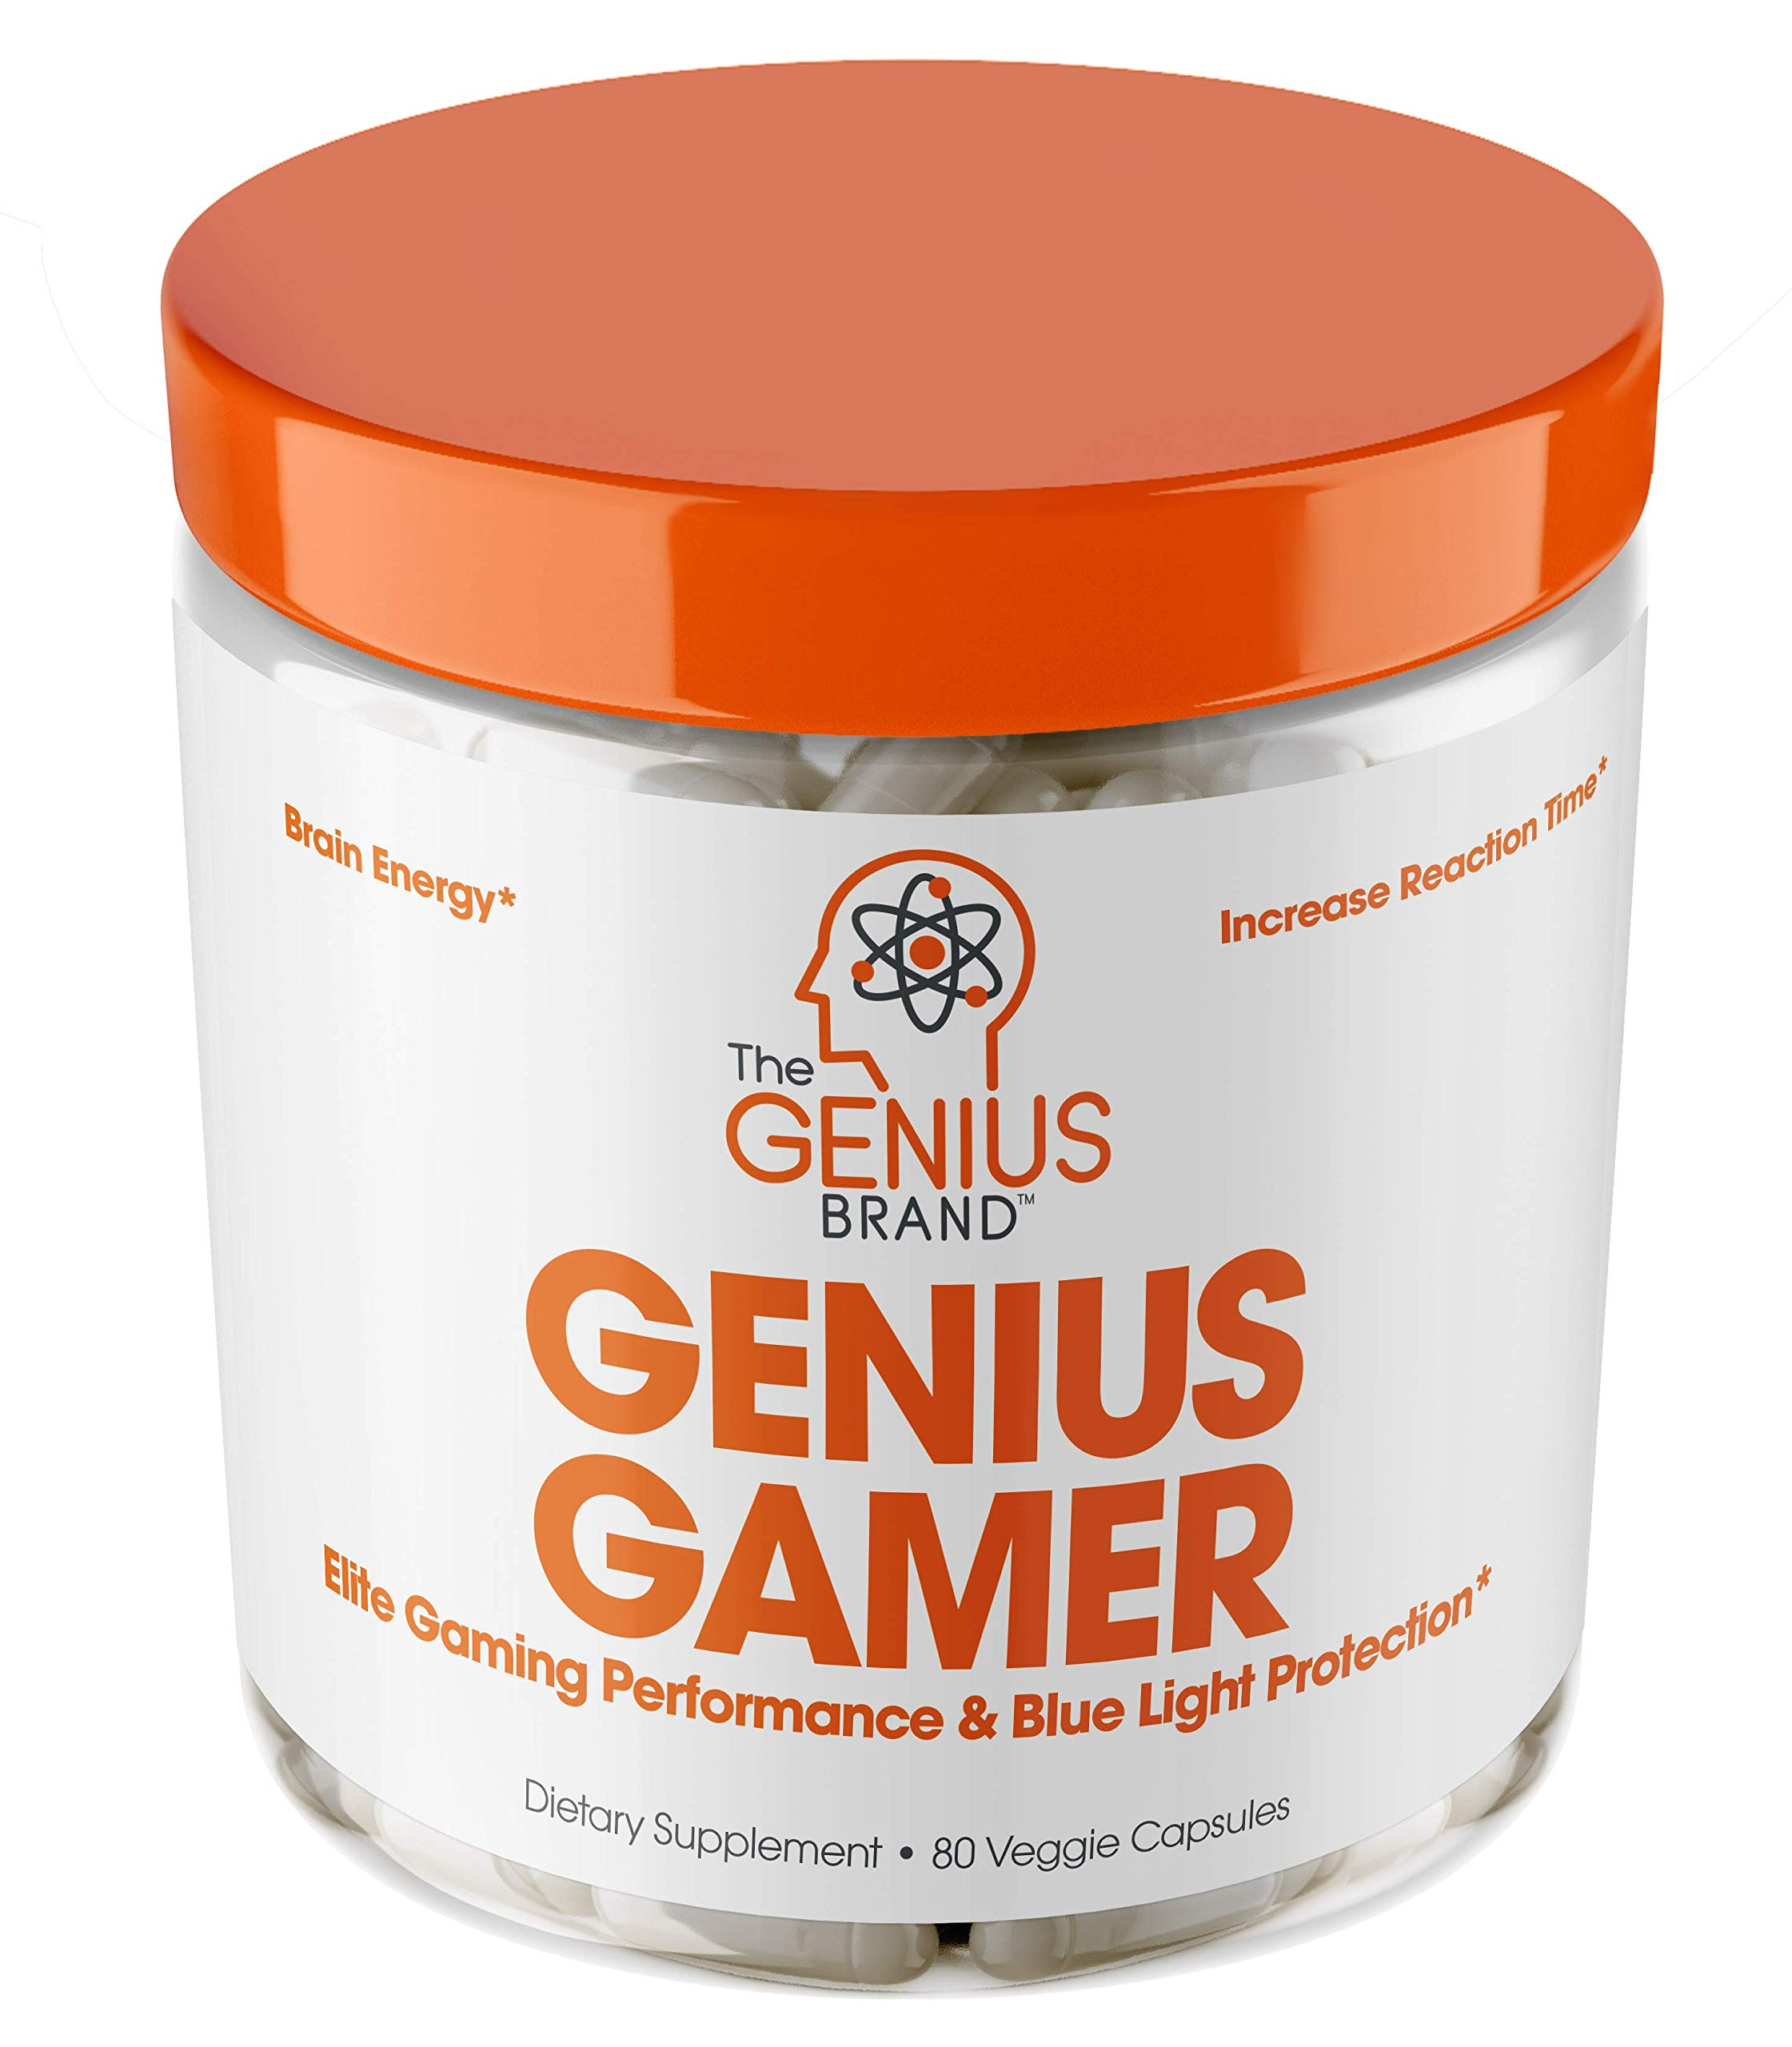 Genius Gamer - Elite Gaming Nootropic | Focus & Brain Booster Supplement - Boost Mental Clarity, Reaction Time, Energy & Concentration - Eye & Vision Vitamins w/Lutein, Support Eye Strain - 80 Pills by The Genius Brand